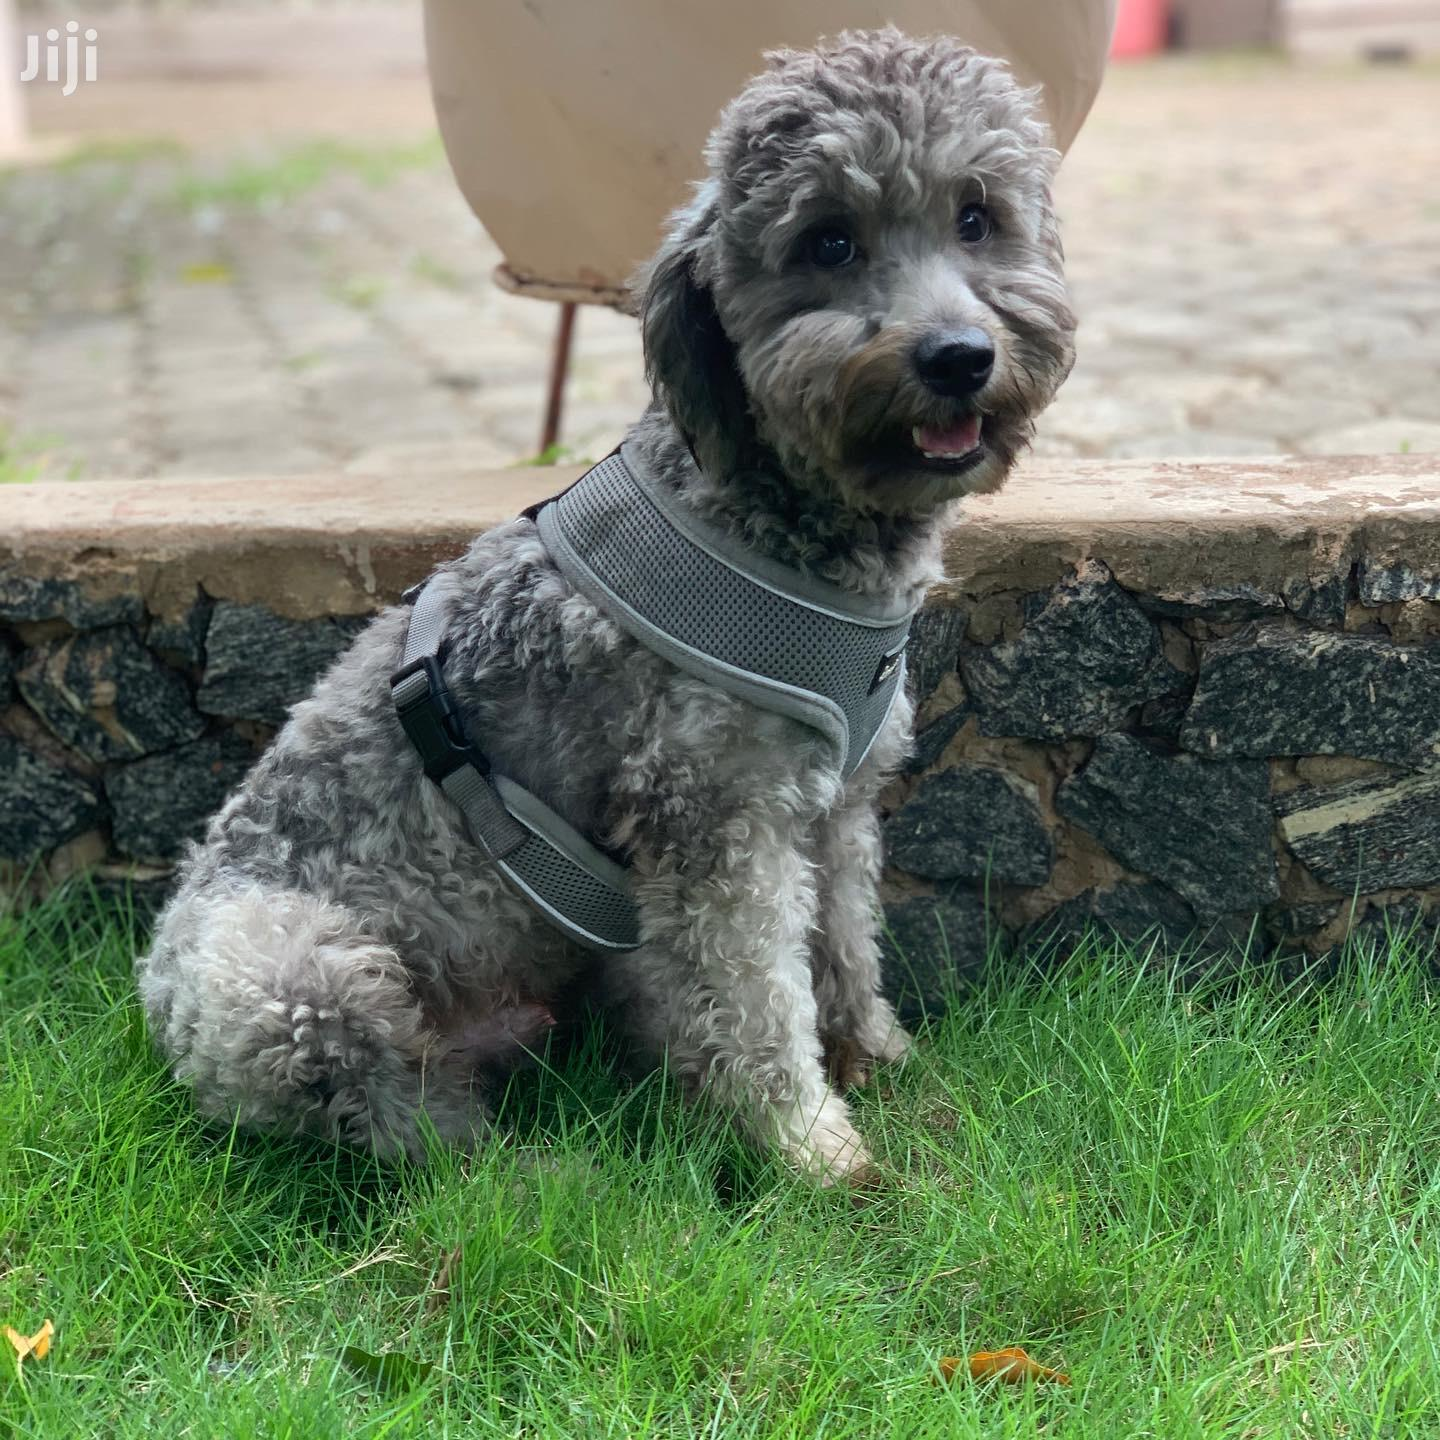 Archive: Baby Male Purebred Poodle